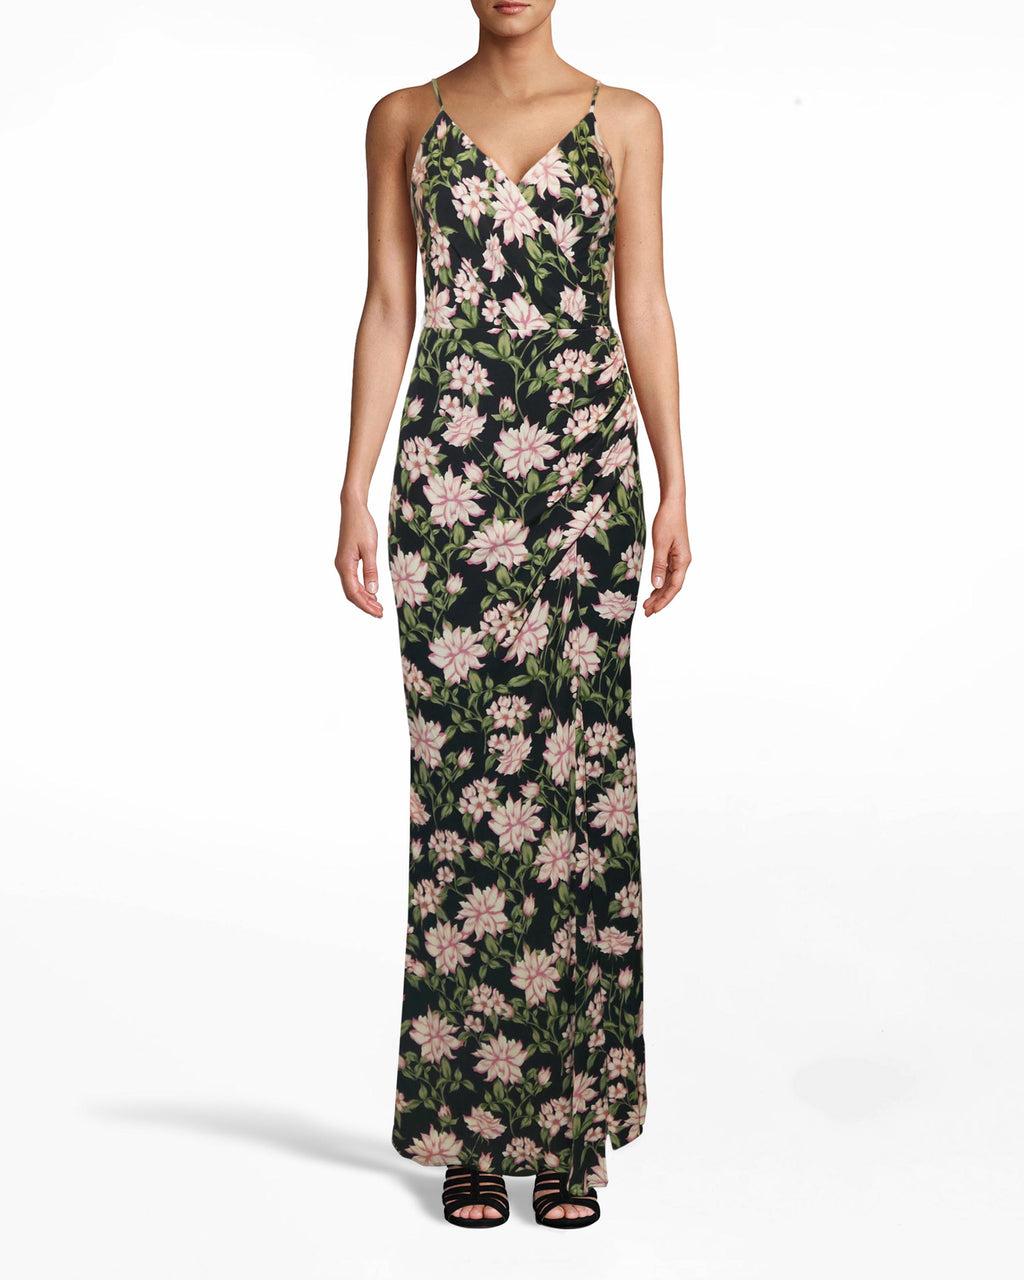 CD10098 - SPRING DREAM DRAPE GOWN WITH SILT - dresses - long - DREAM GOWN. CRAFTED IN OUR NEW SPRING DREAM PRINT WITH SPAGHETTI STRAPS AND A SIDE SLIT. THE HEMLINE HITS RIGHT AT THE ANKLE. FULLY LINED AND CONCEALED BACK ZIPPER FOR CLOSURE.